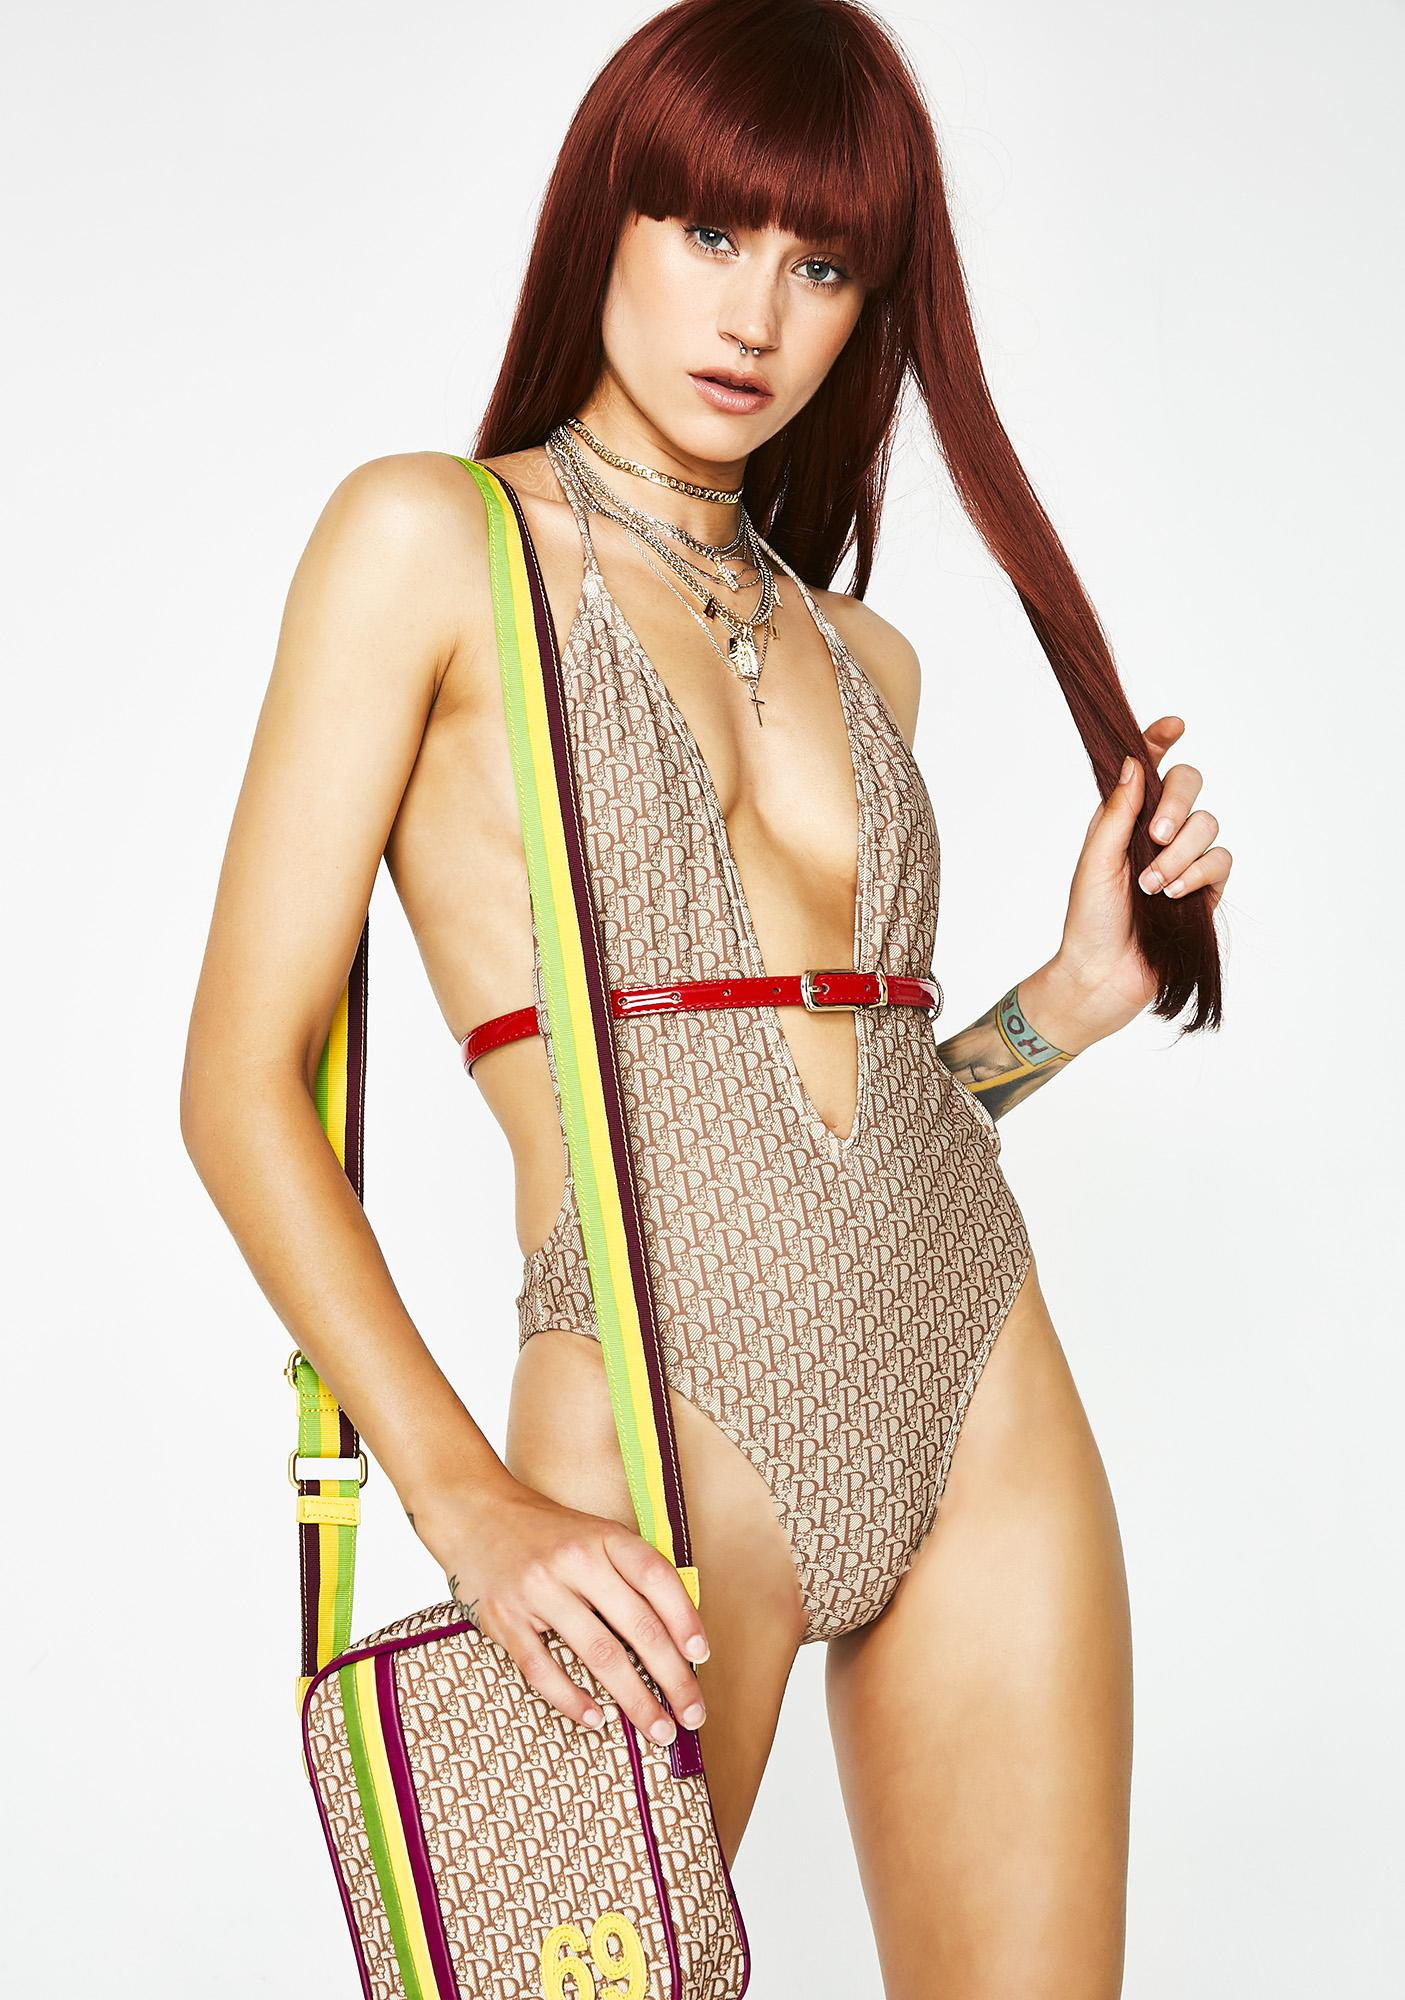 Poster Grl Lituation PG One Piece